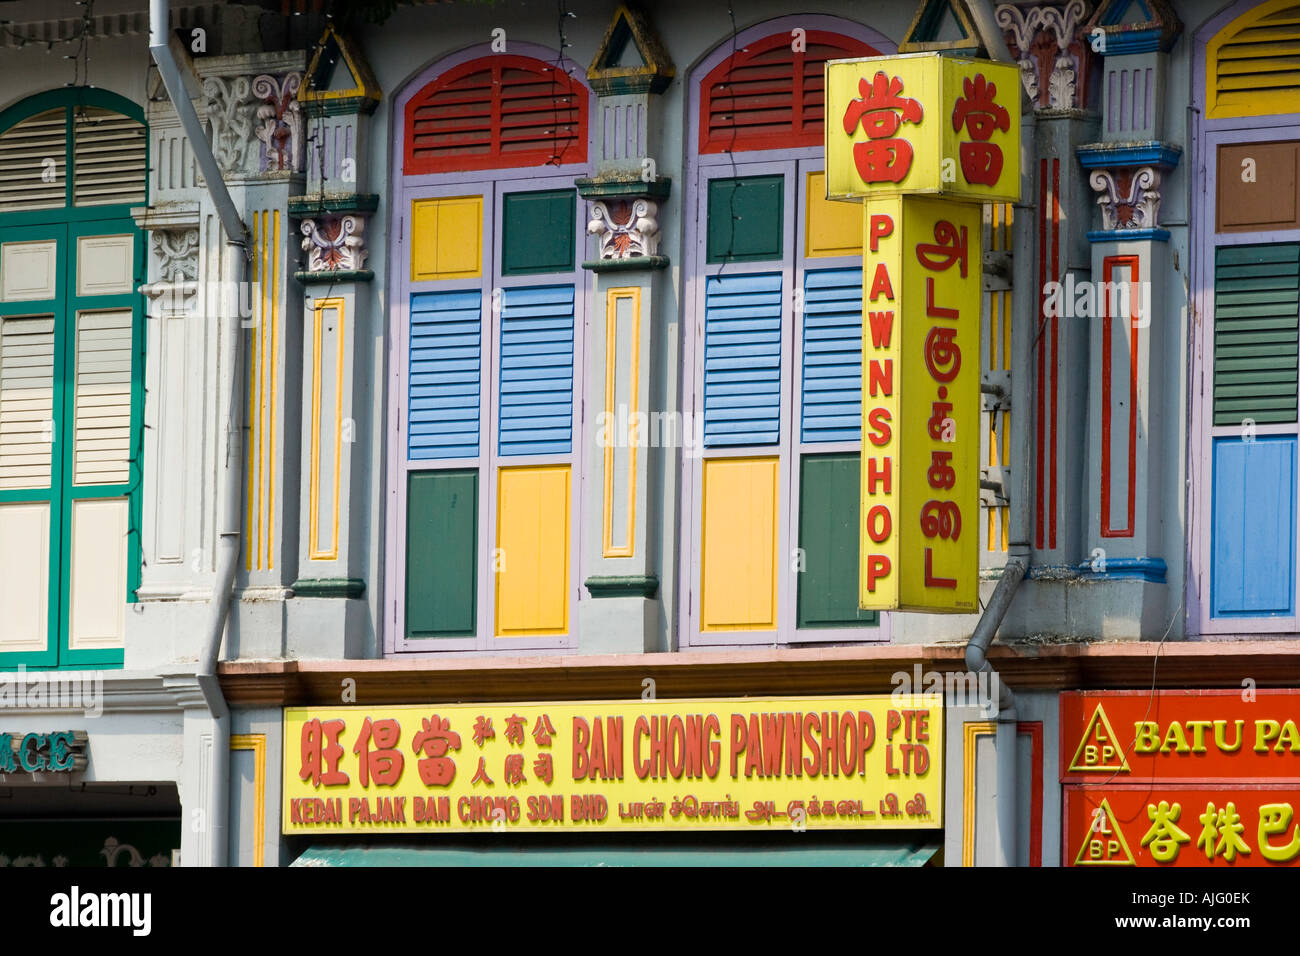 Pan Shop and Old Chinese Shophouse Building Little India Singapore - Stock Image